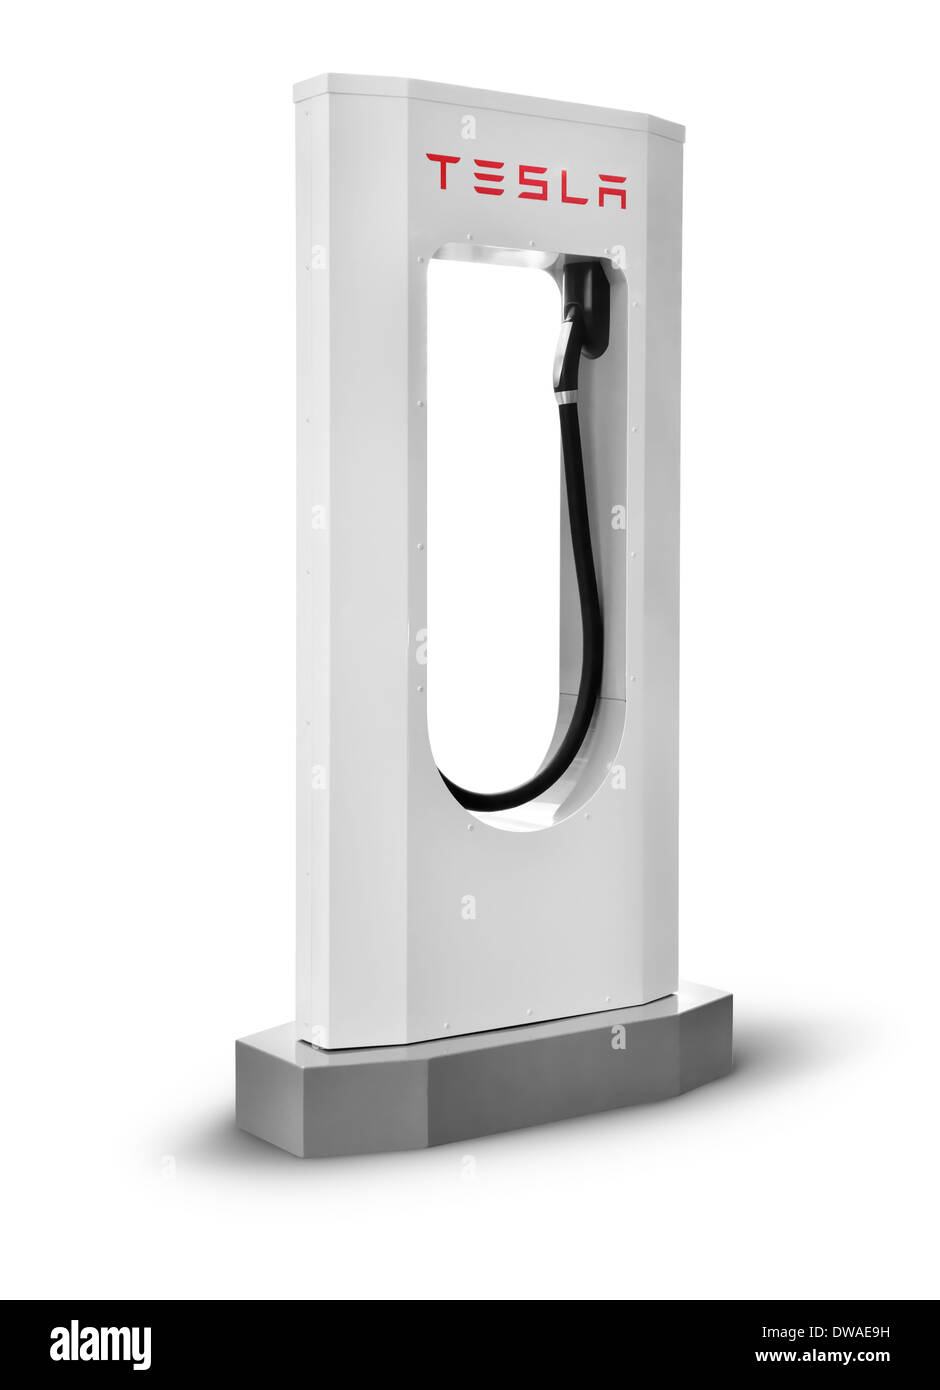 Tesla supercharger charging station isolated on white background with clipping path - Stock Image